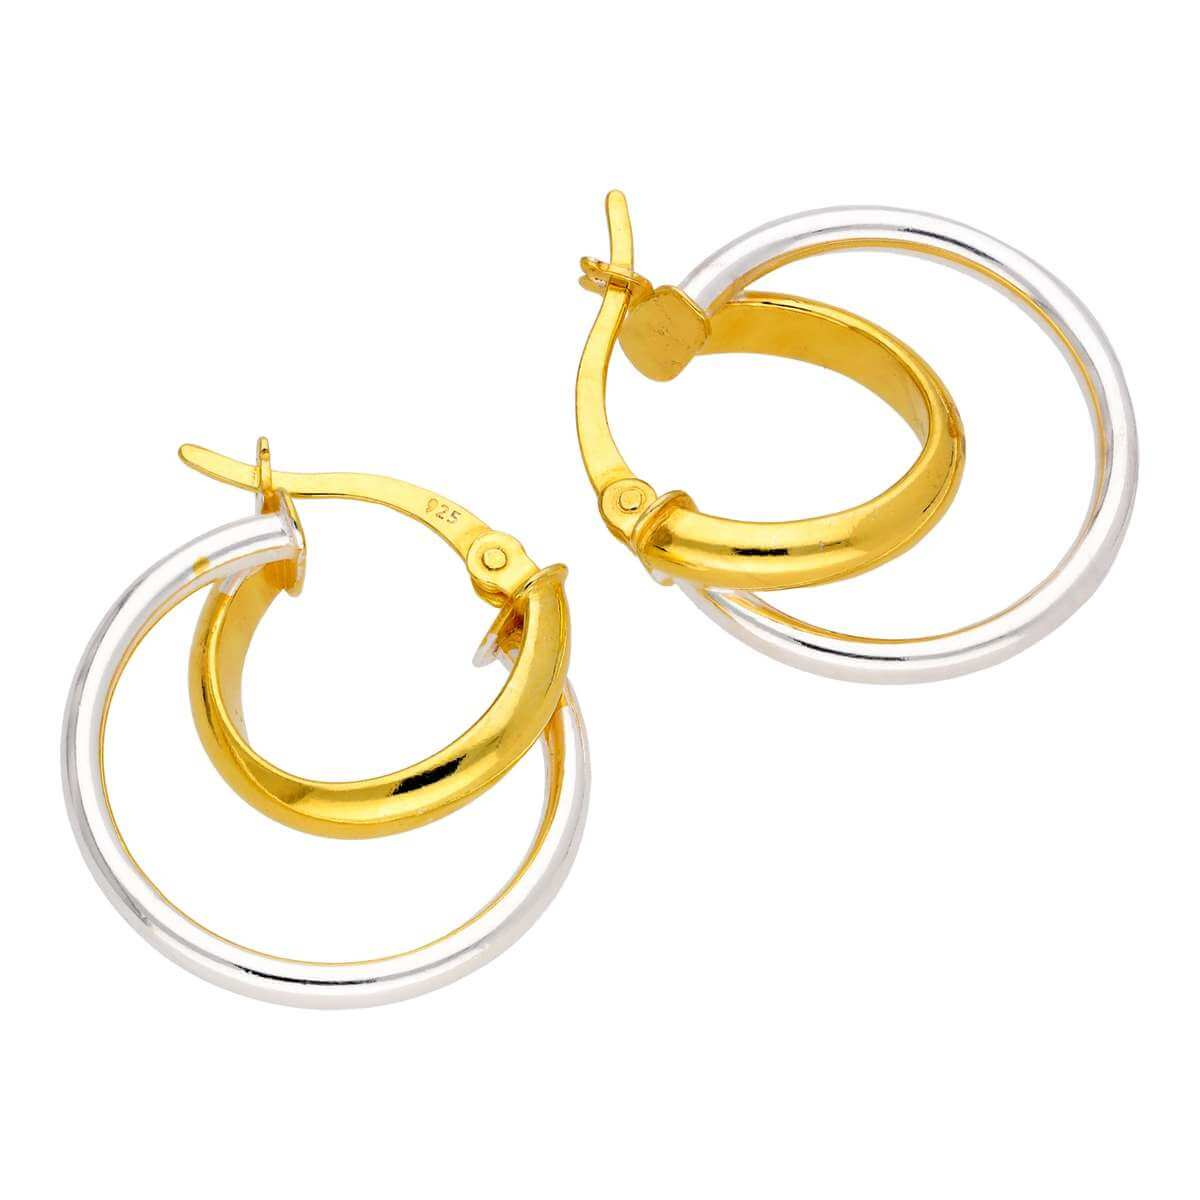 Gold Plated Sterling Silver Double Twisted Hoop Earrings